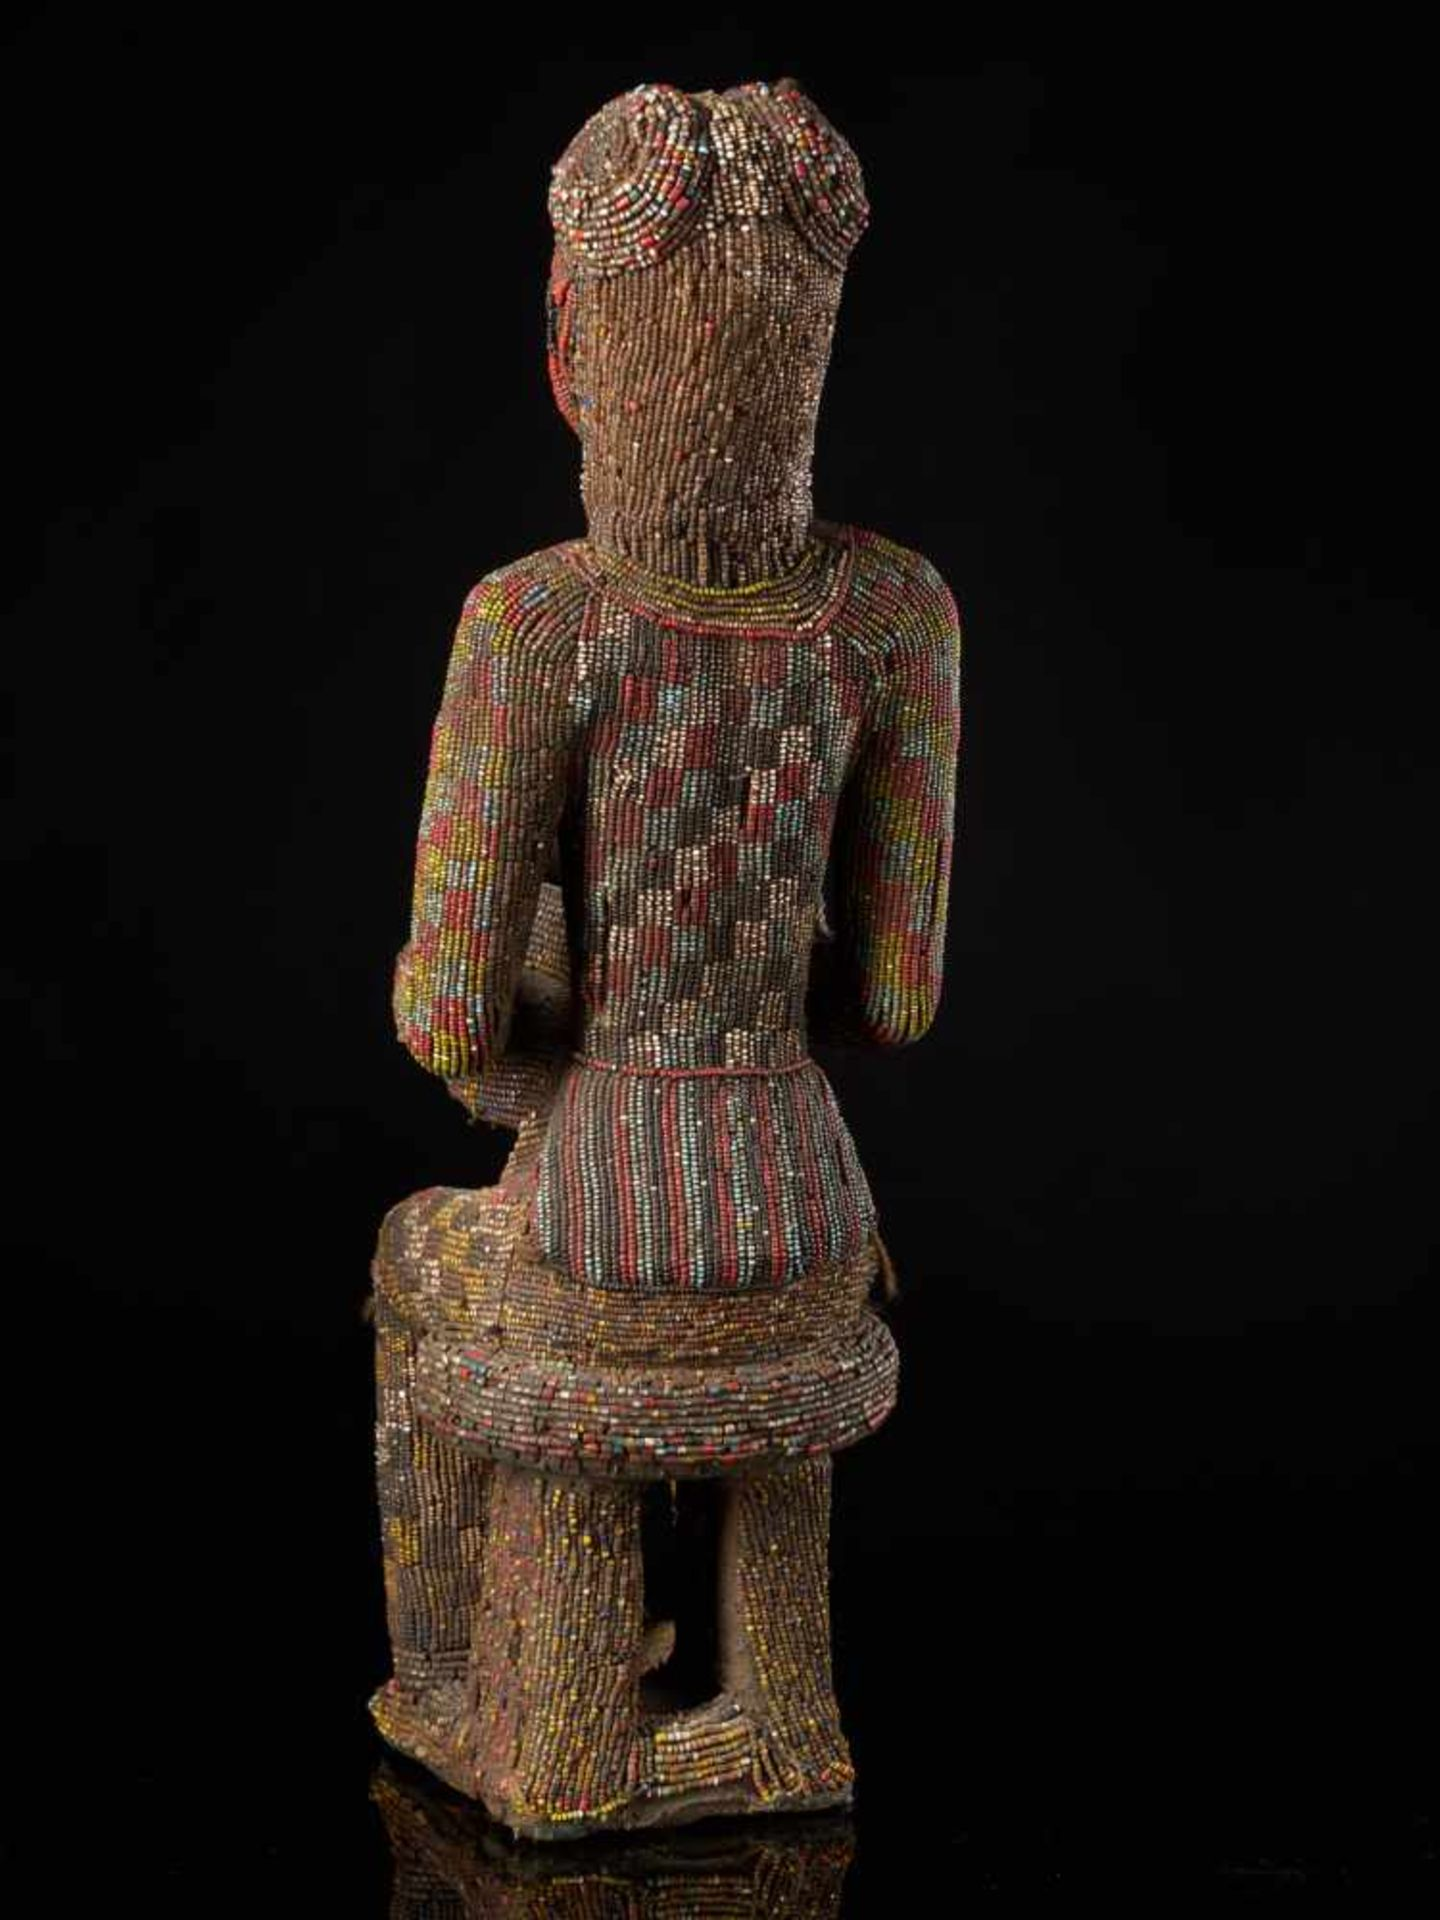 Beaded Figure Of Cupholder - Tribal ArtA beaded figure of a man sitting on a stool, holding a cup. - Bild 3 aus 6